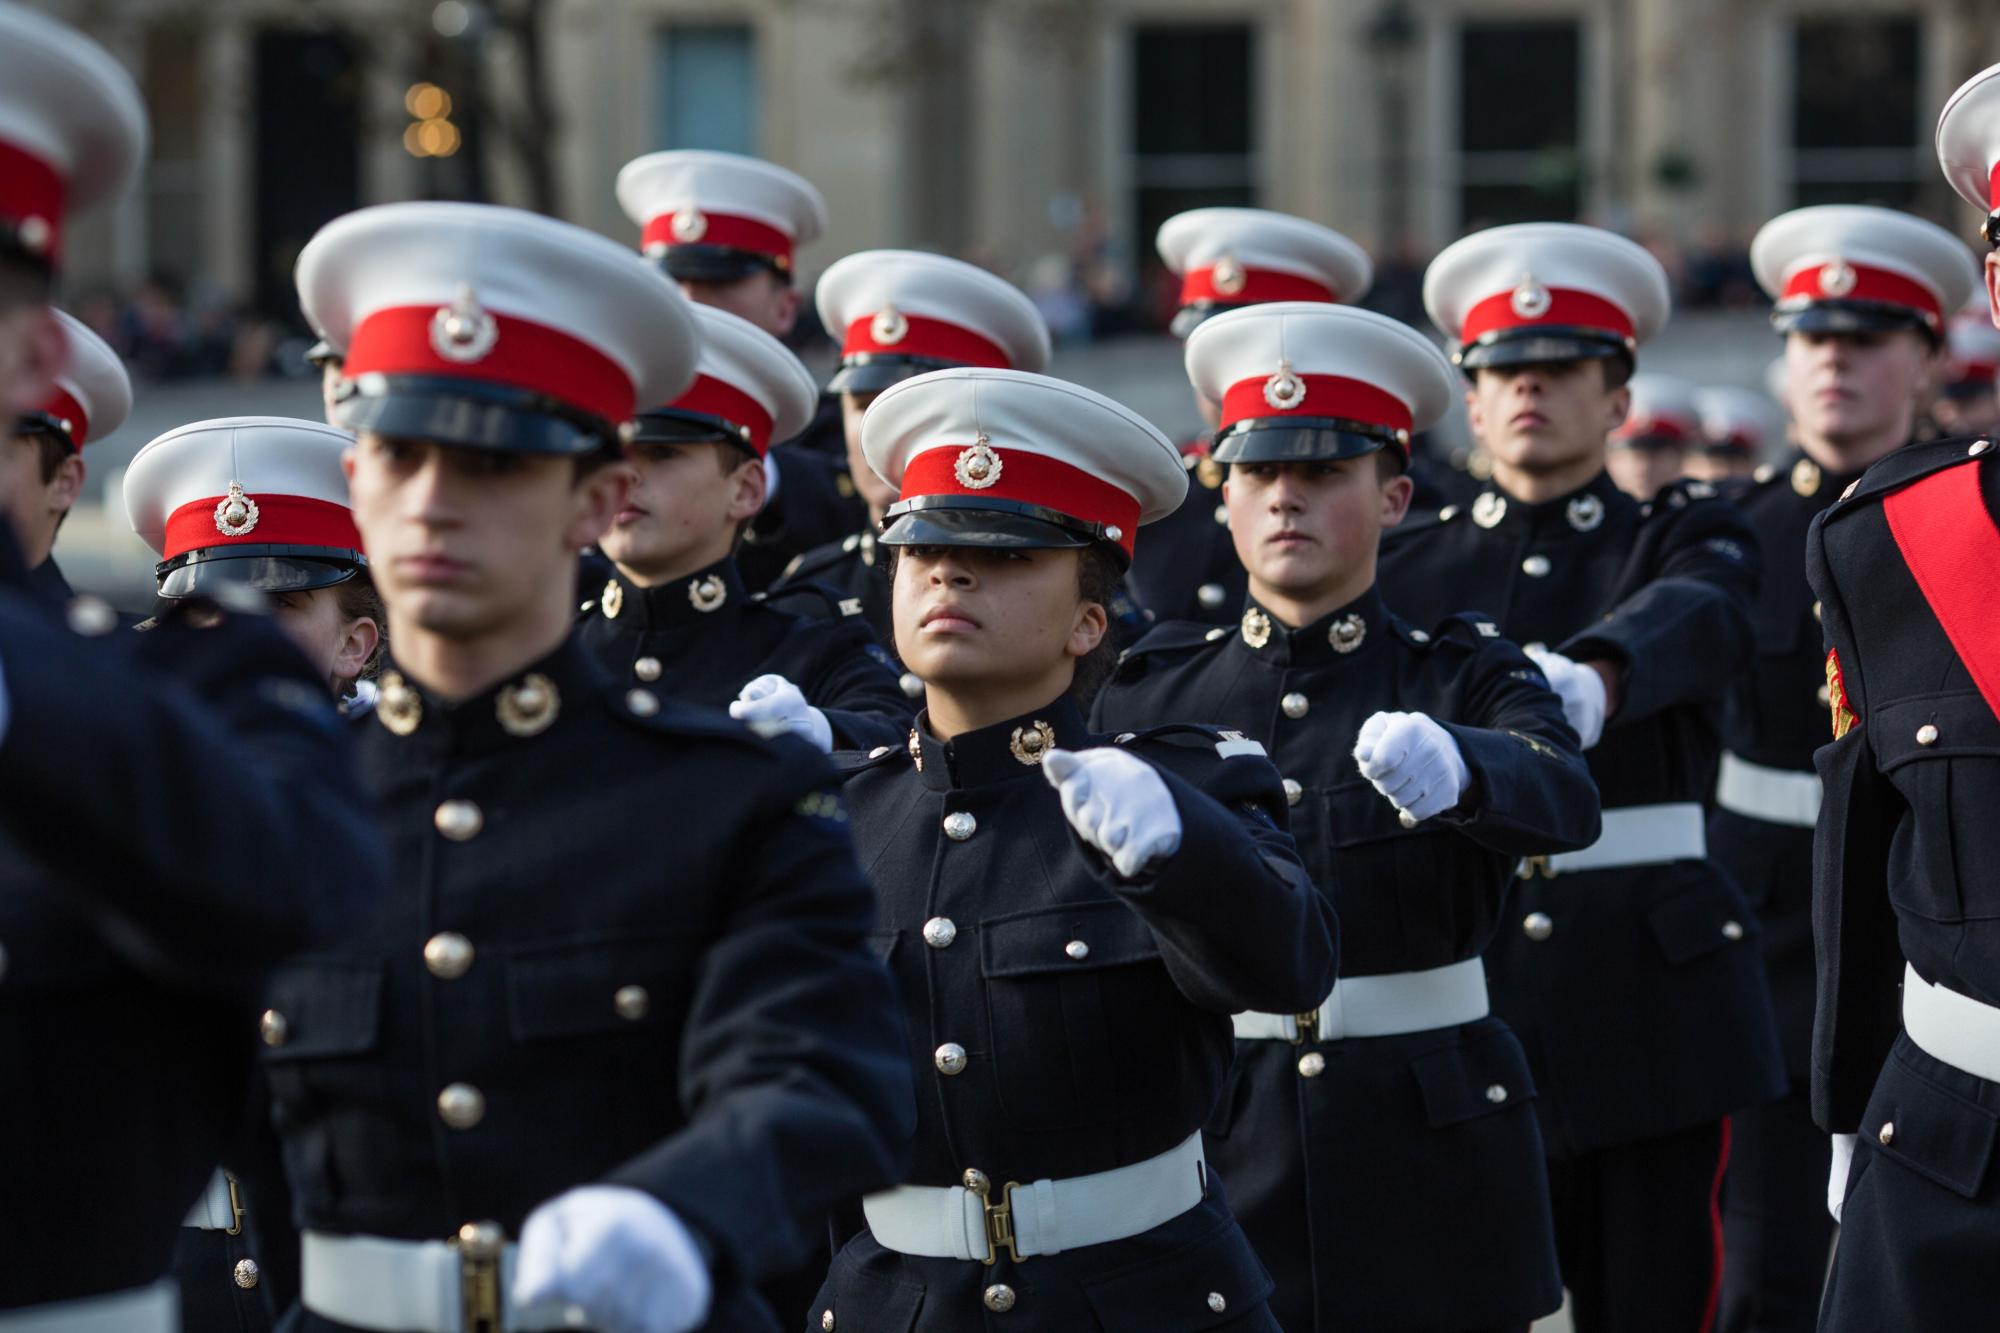 Royal Marine Cadets marching in uniform